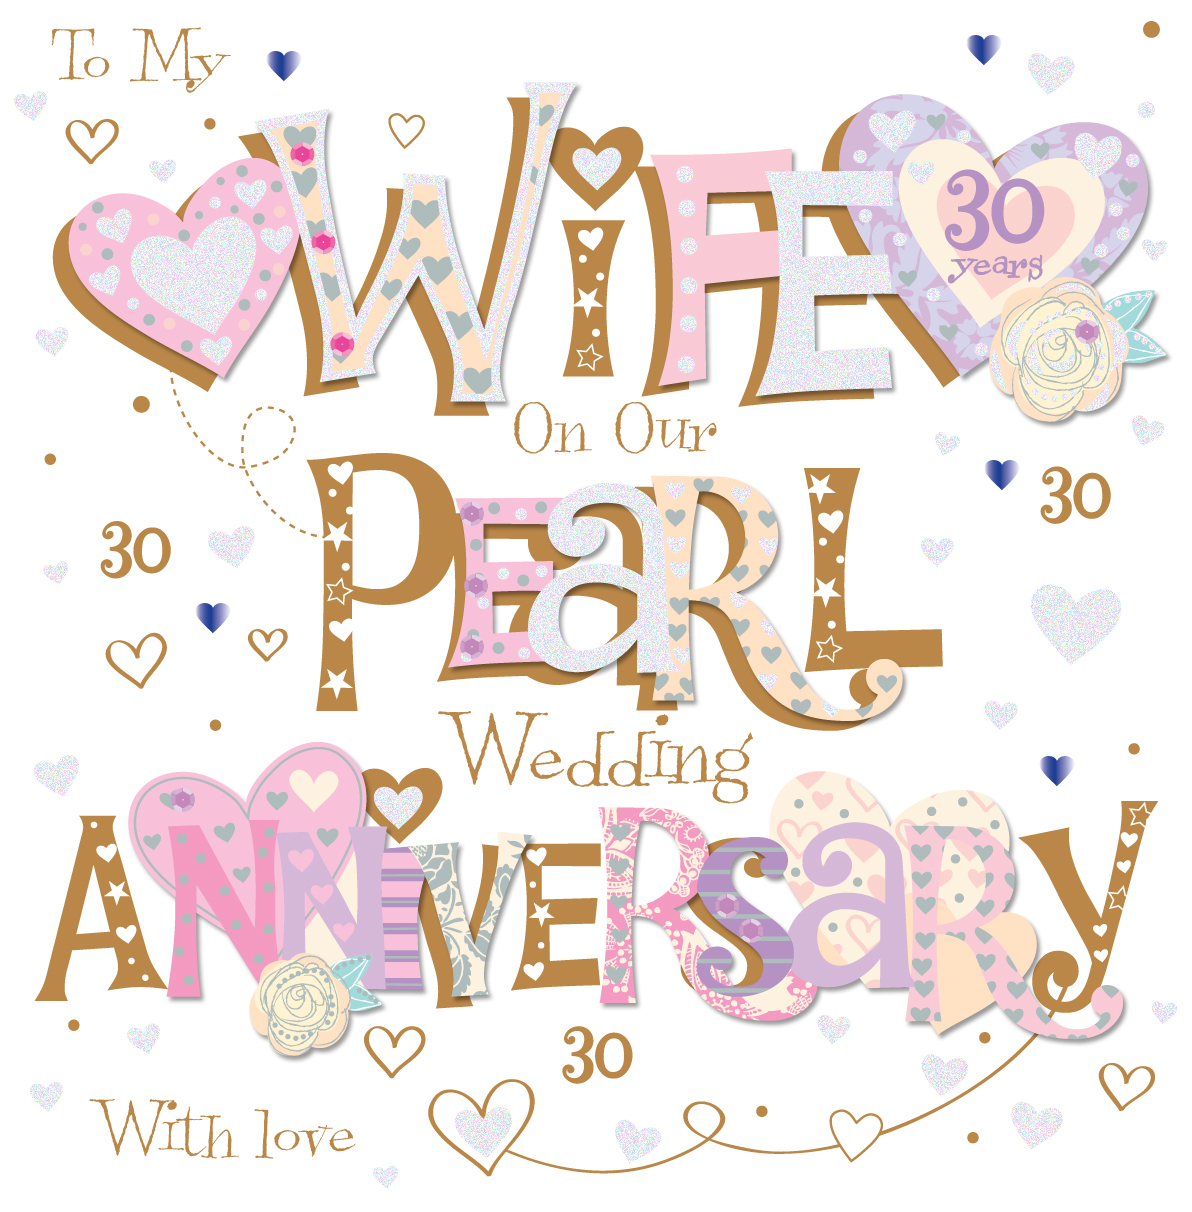 Wife pearl 30th wedding anniversary greeting card cards love kates wife pearl 30th wedding anniversary greeting card m4hsunfo